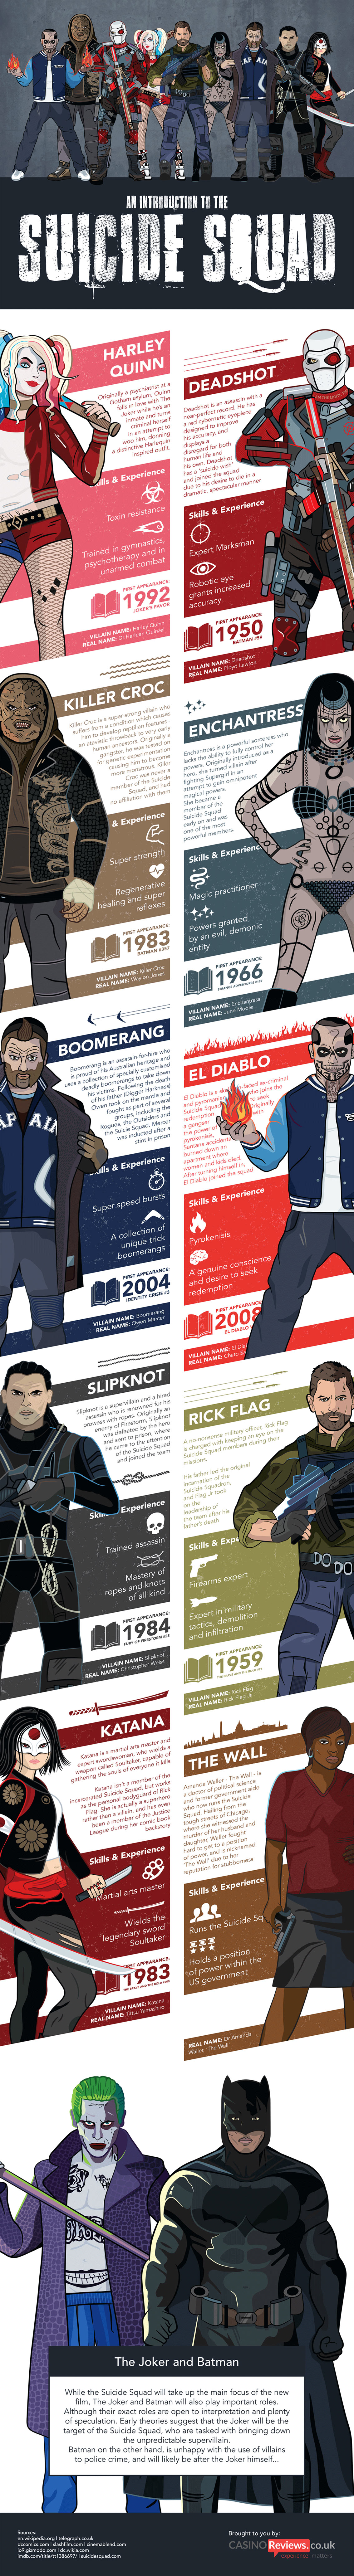 Suicide Squad Characters - Movie Infographic